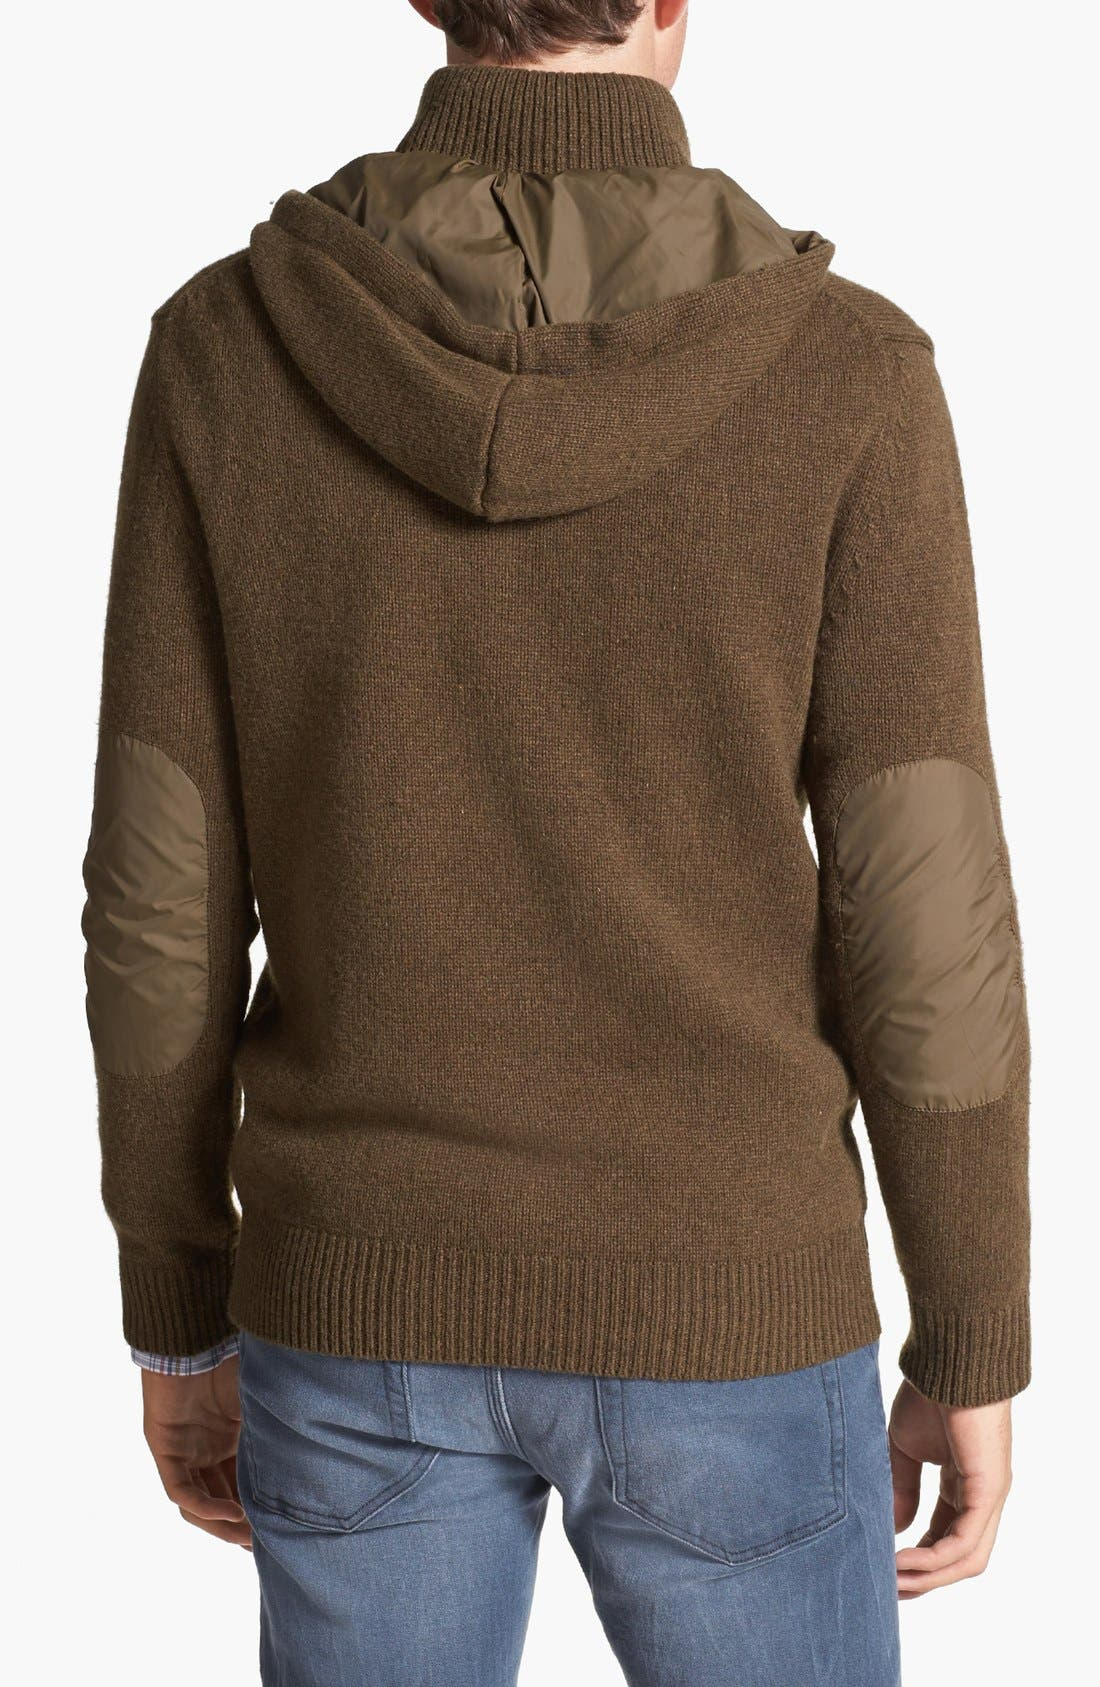 'Infantry' Wool Blend Sweater,                             Alternate thumbnail 3, color,                             341